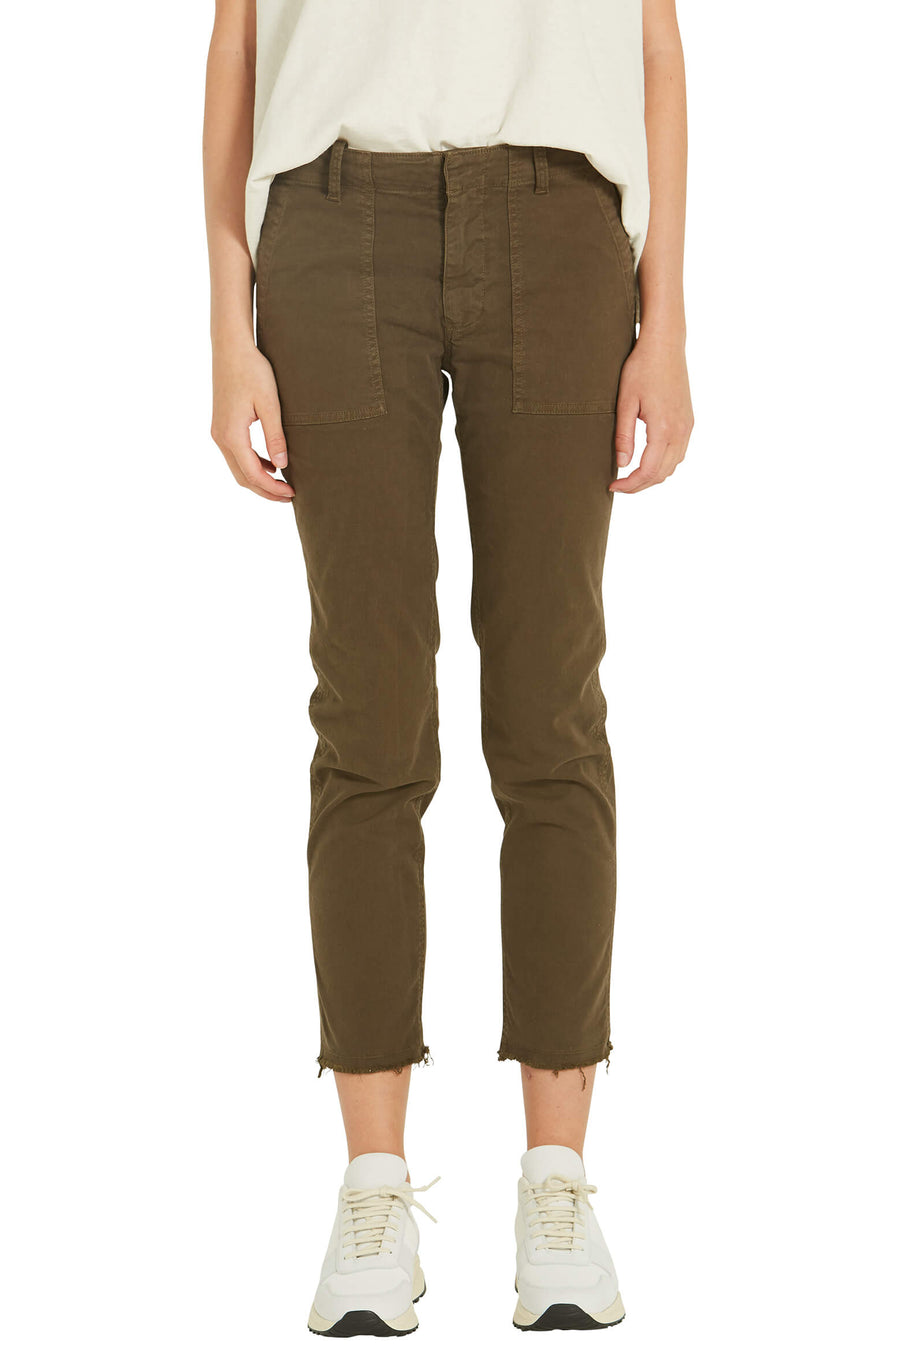 Nili Lotan Jenna Pants in Mocha from The New Trend